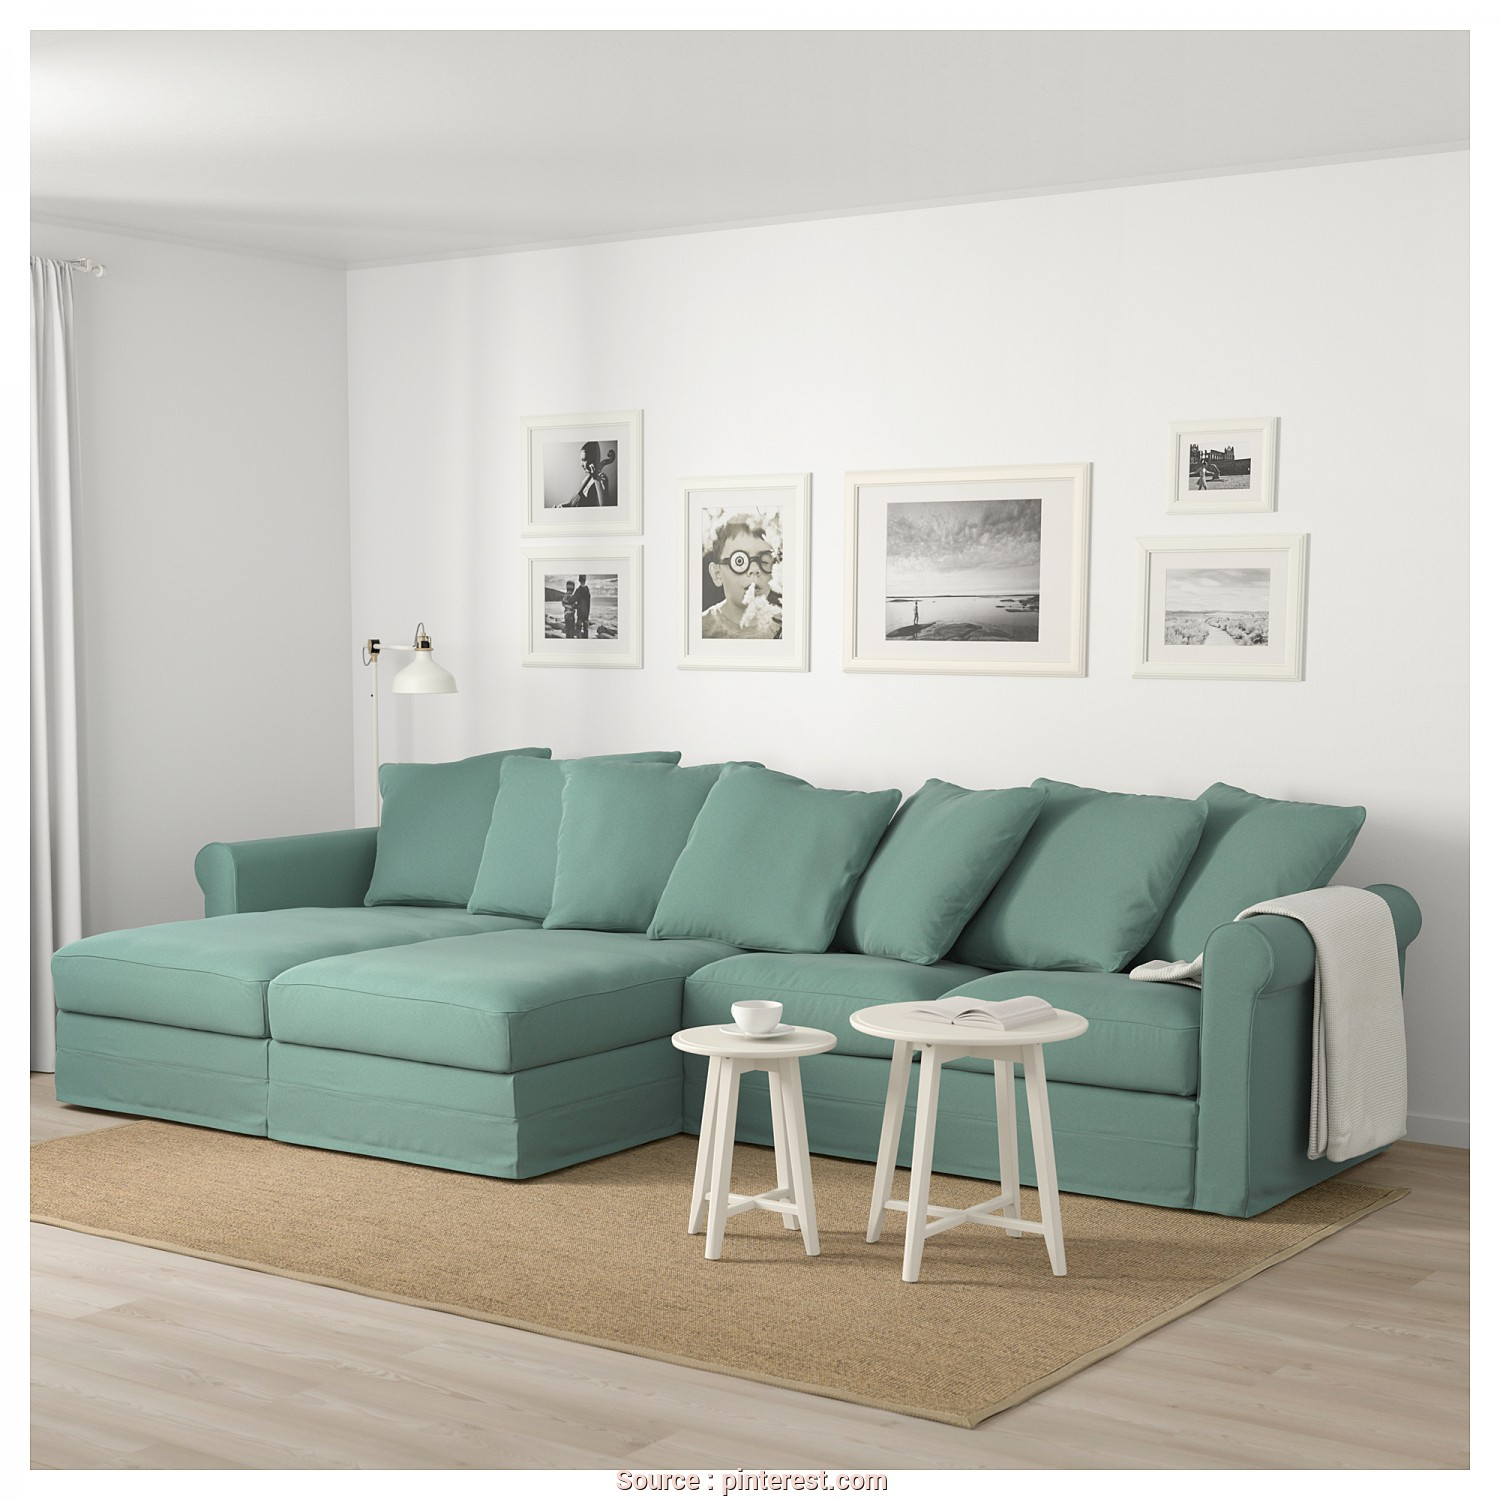 Gronlid Divano 3 Posti, Maestoso IKEA, GRÖNLID Sectional, 4-Seat With Chaise, Ljungen Light Green